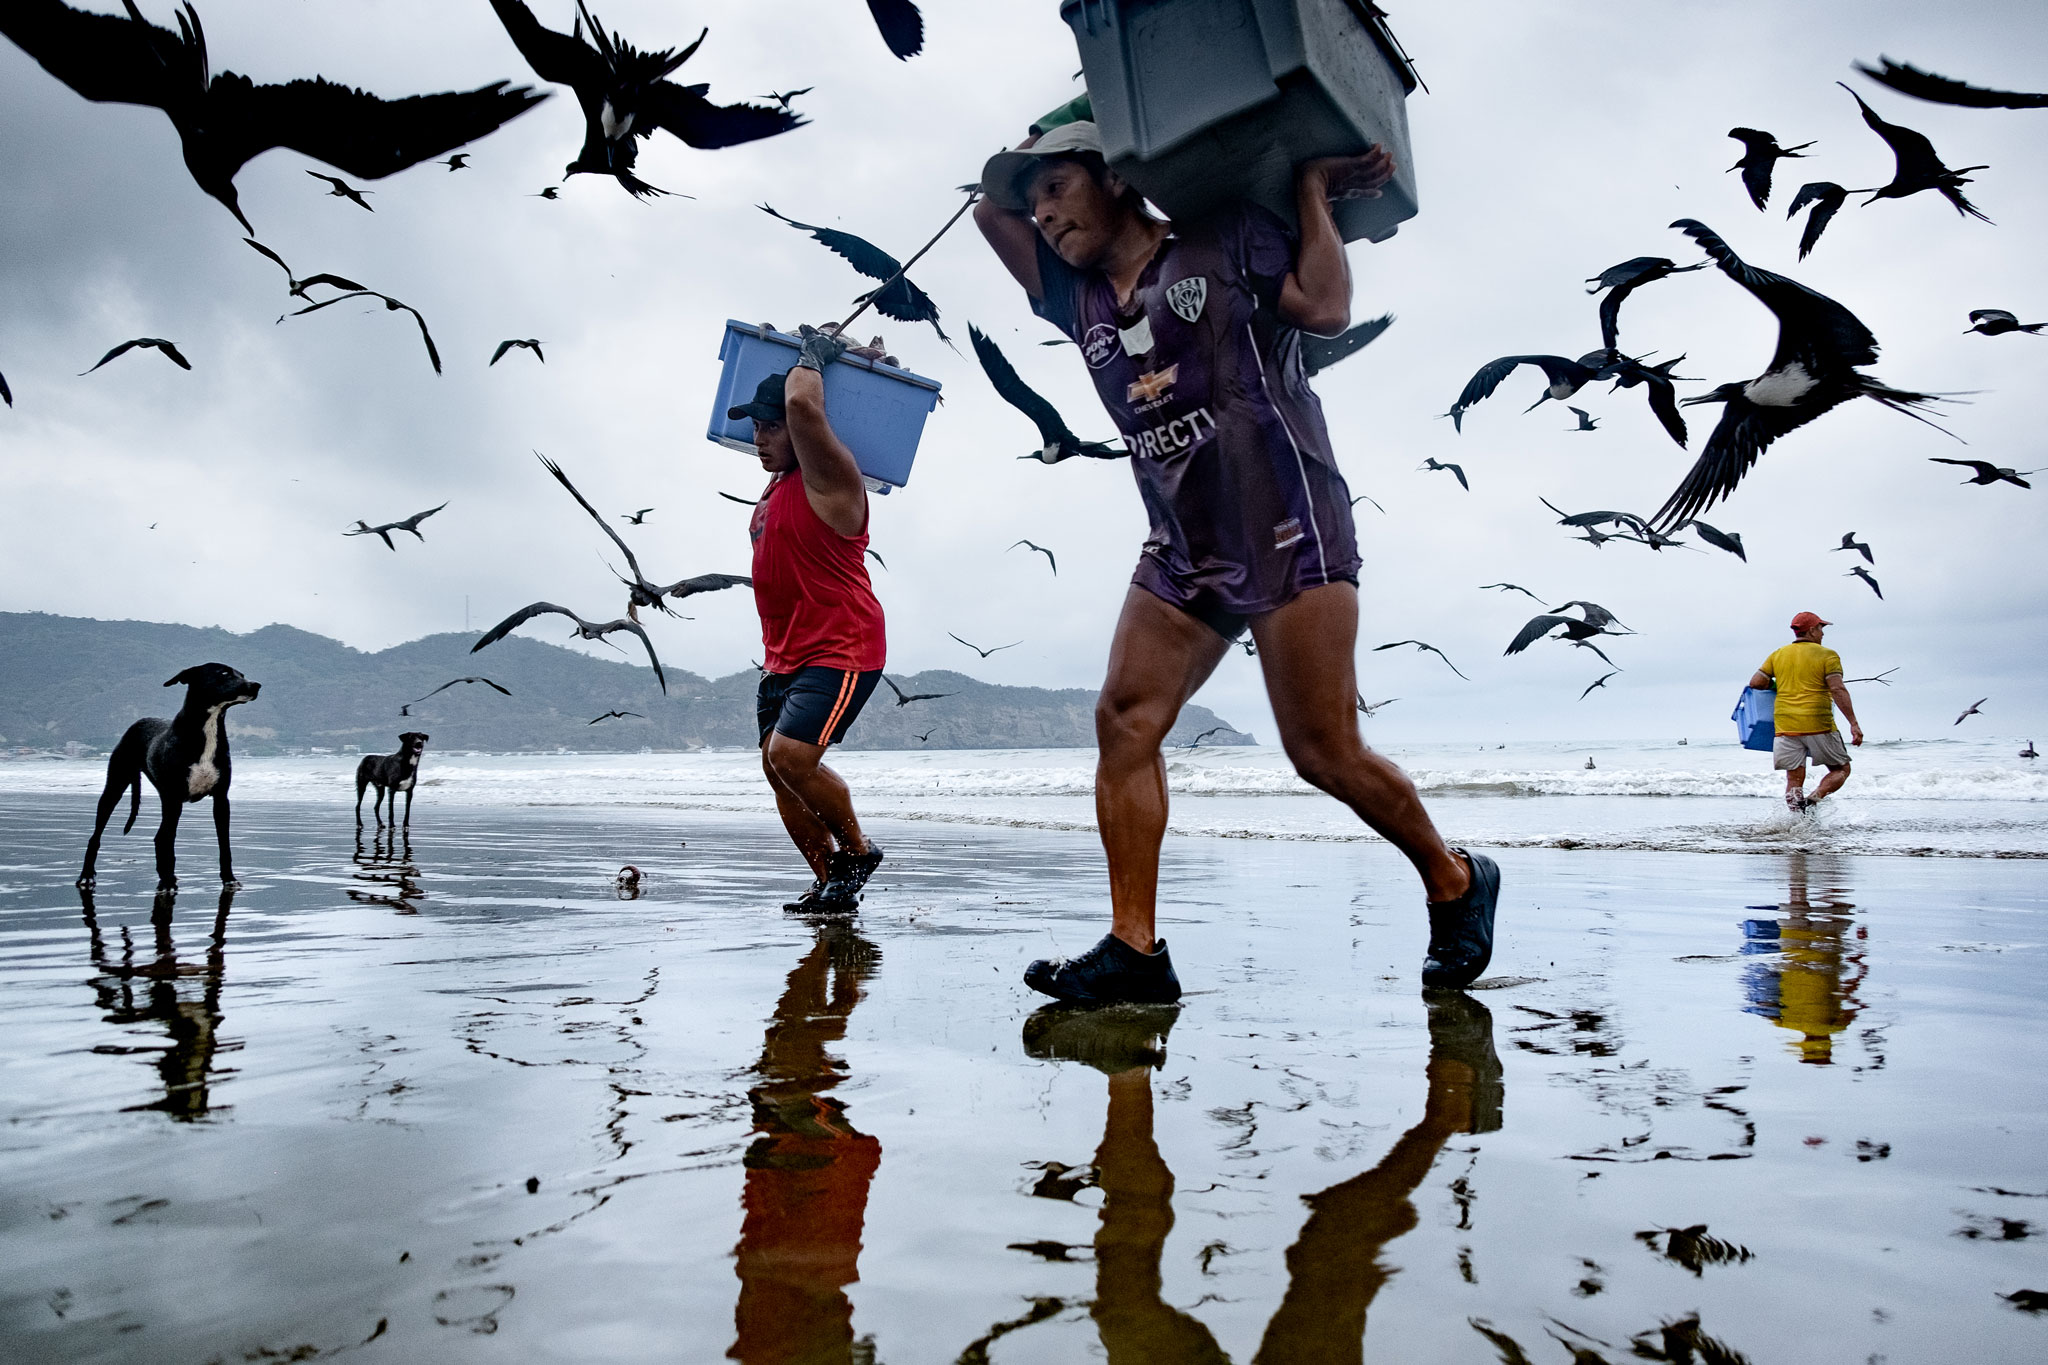 ECUADORIAN FISHERMEN CARRYING BASKETS FULL OF FISH